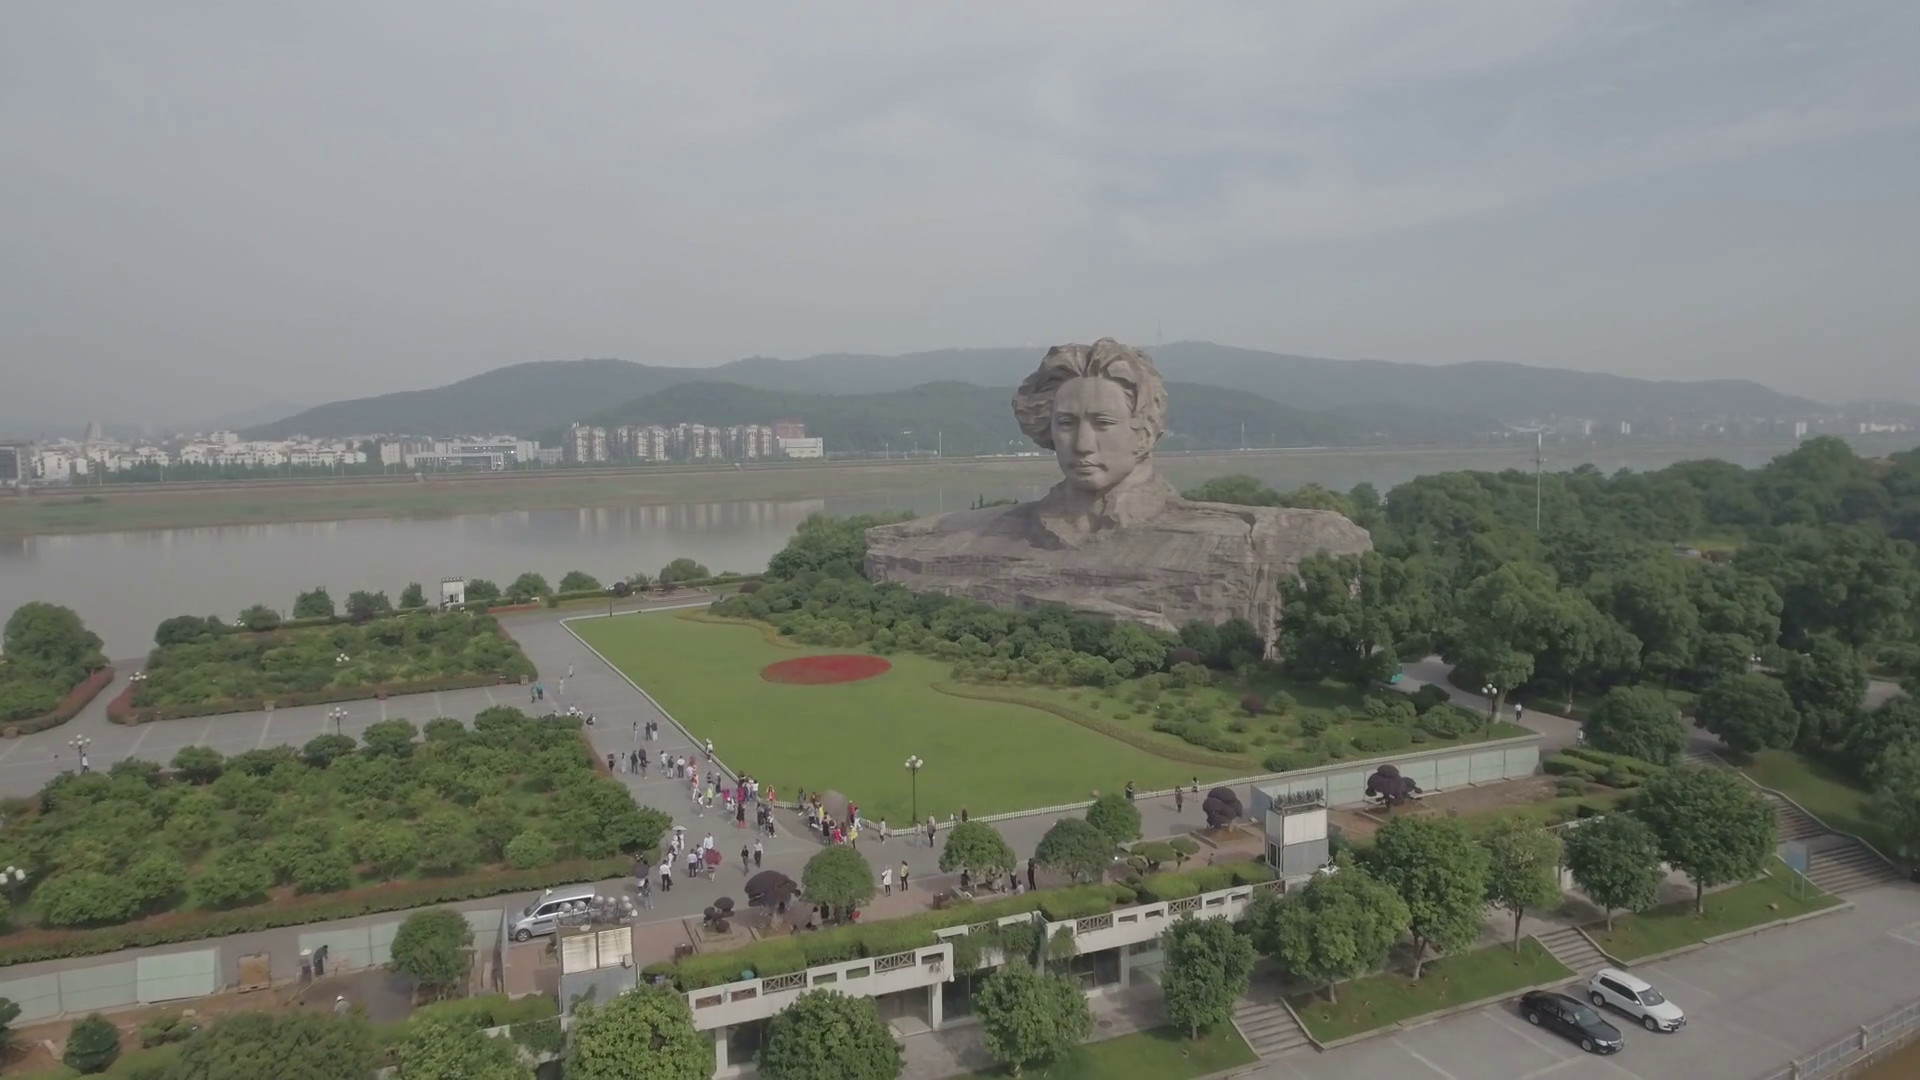 Res: 1920x1080, Flying towards a statue of Mao Zedong, founder of the People's Republic of  China Stock Video Footage - Videoblocks